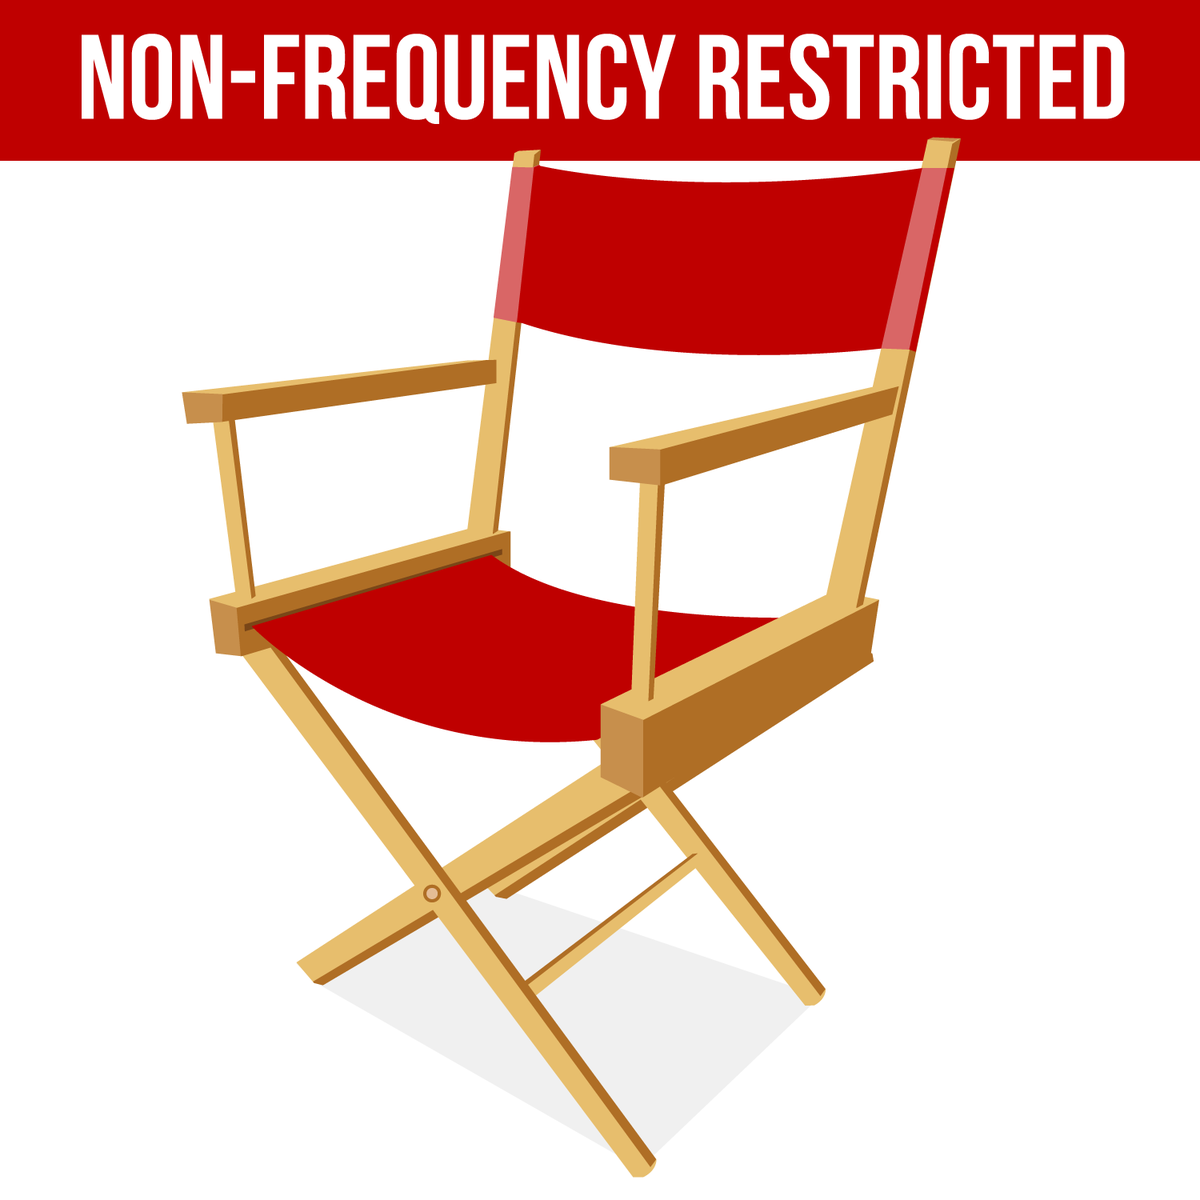 1565818881 non frequency icon